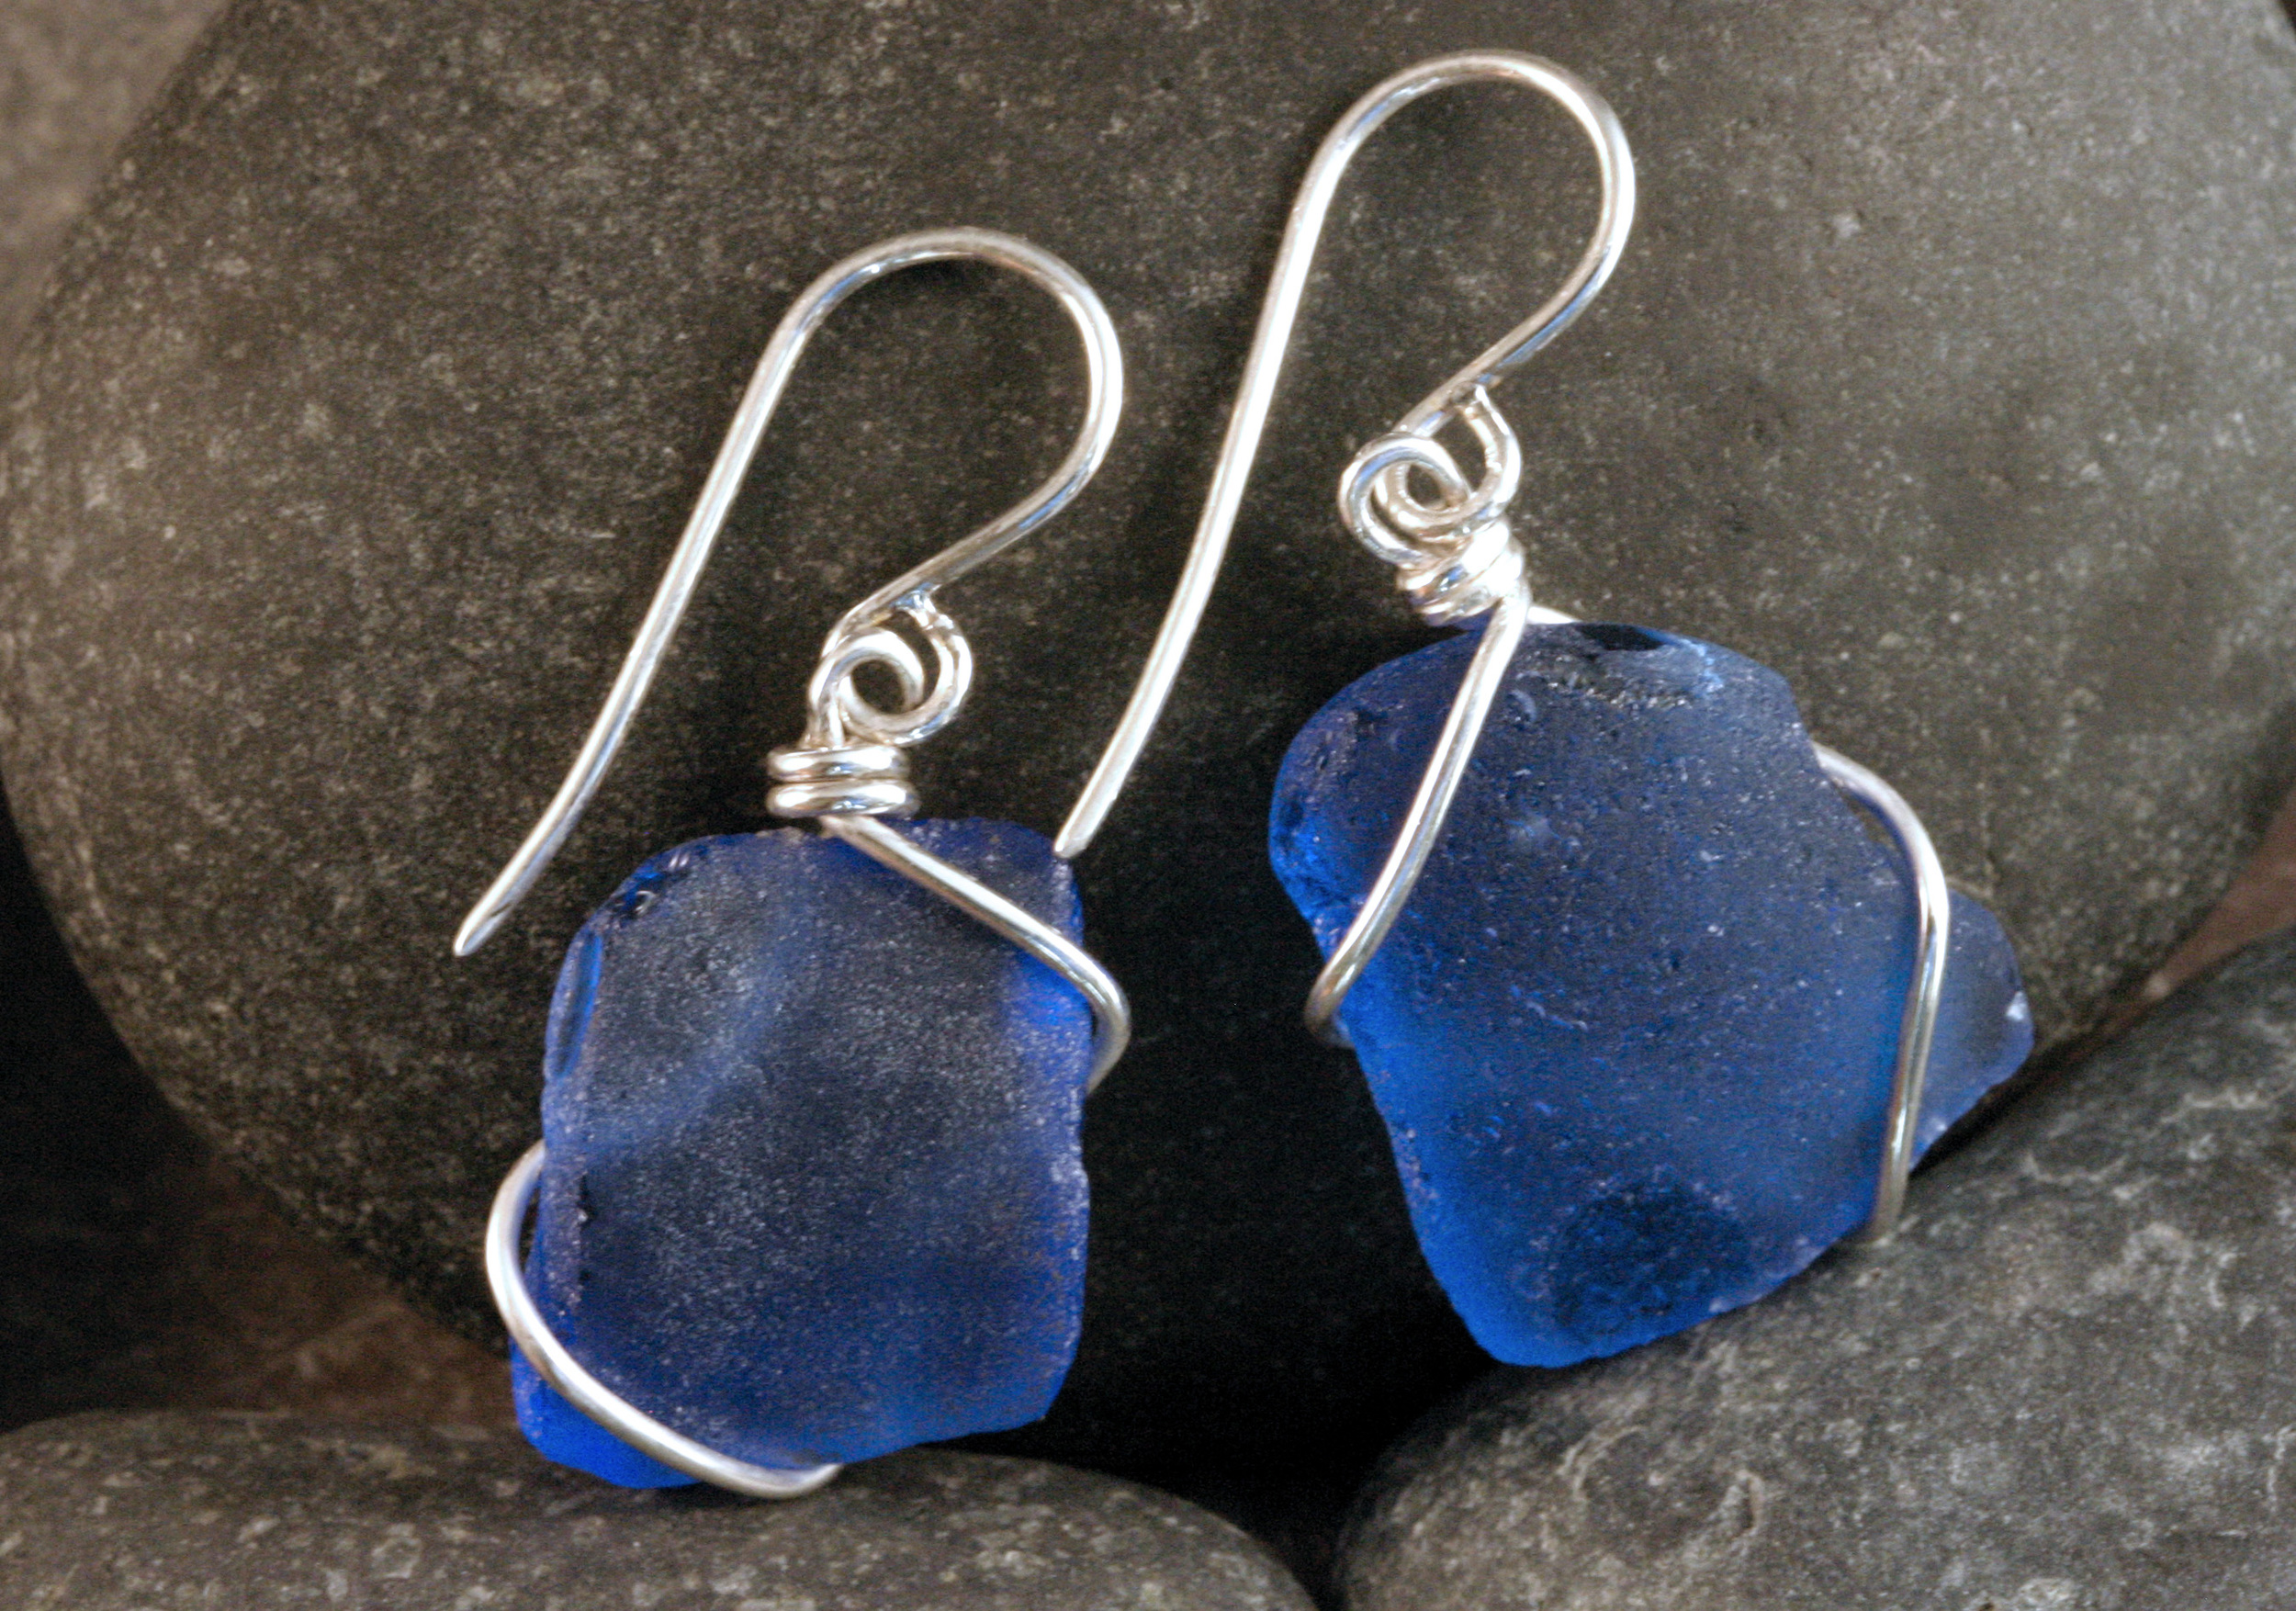 Blue seaglass wire wrapped into sterling silver earrings.